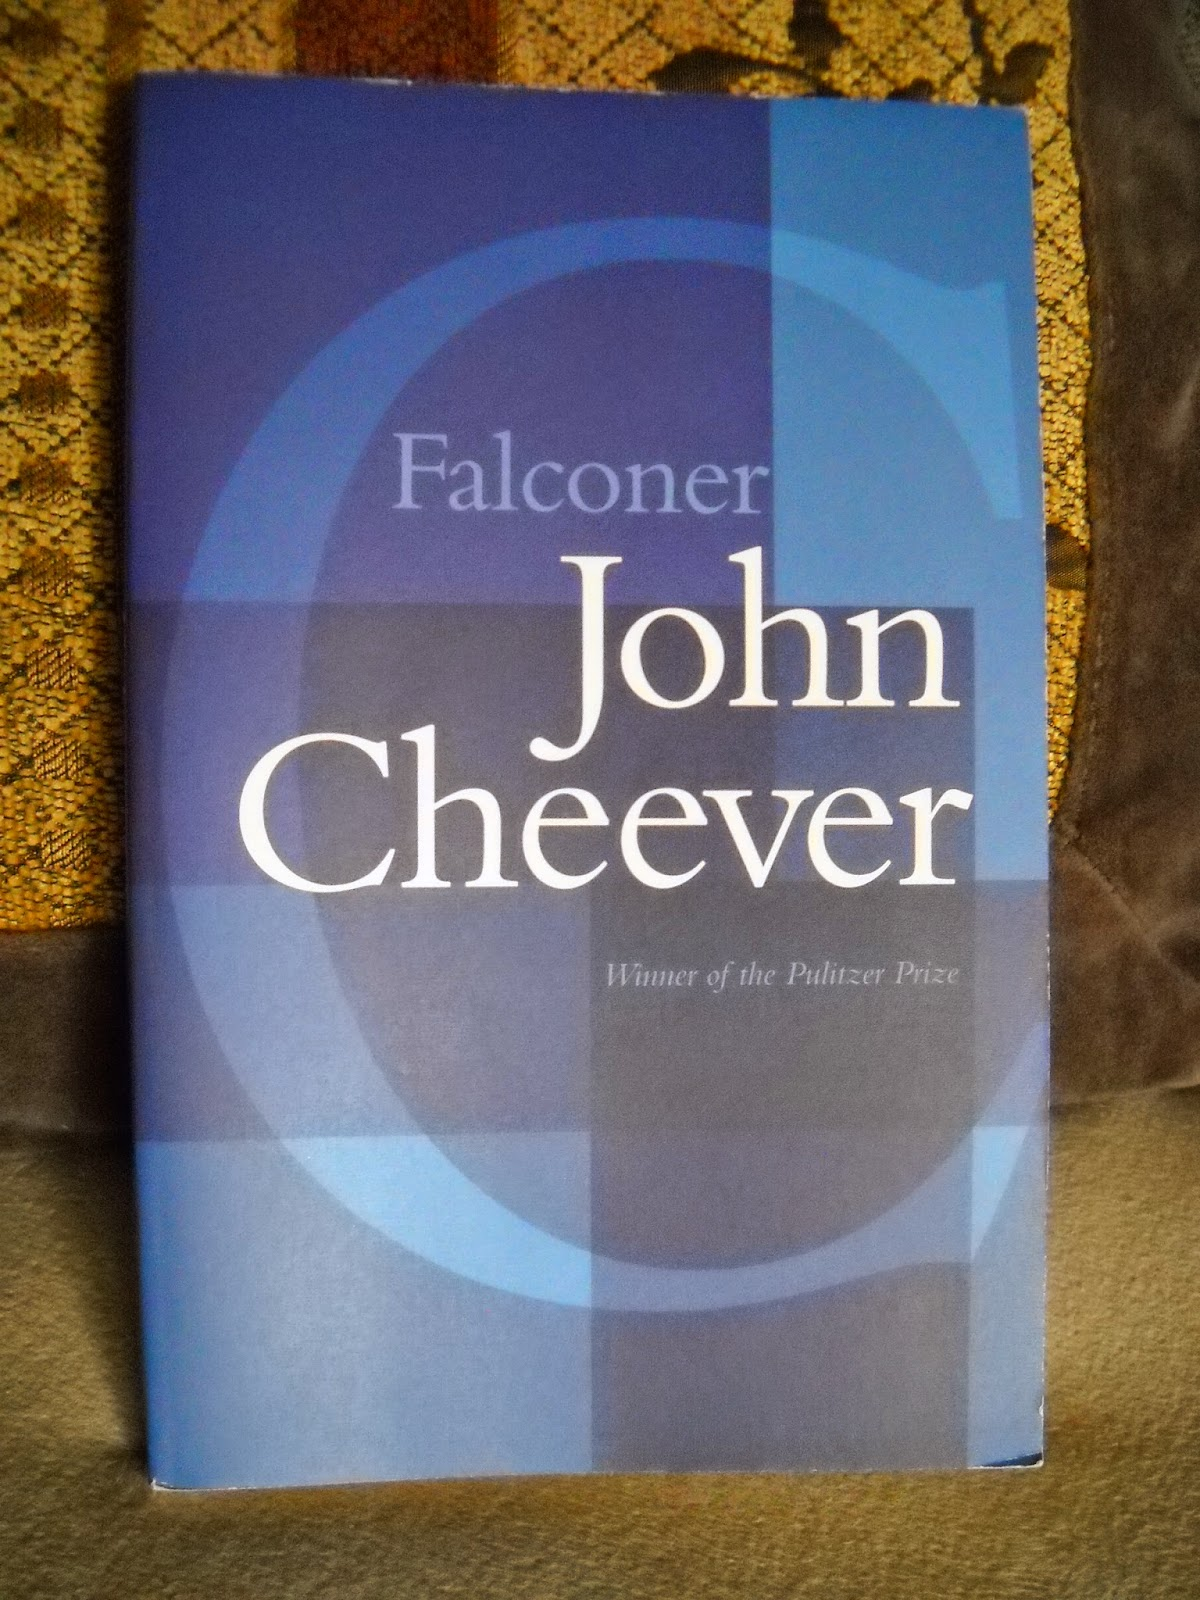 an analysis of the main character farragut in the novel falconer by john cheever Skip to main content search the history of over 327 billion web pages on the internet  full text of bulletin see other formats.